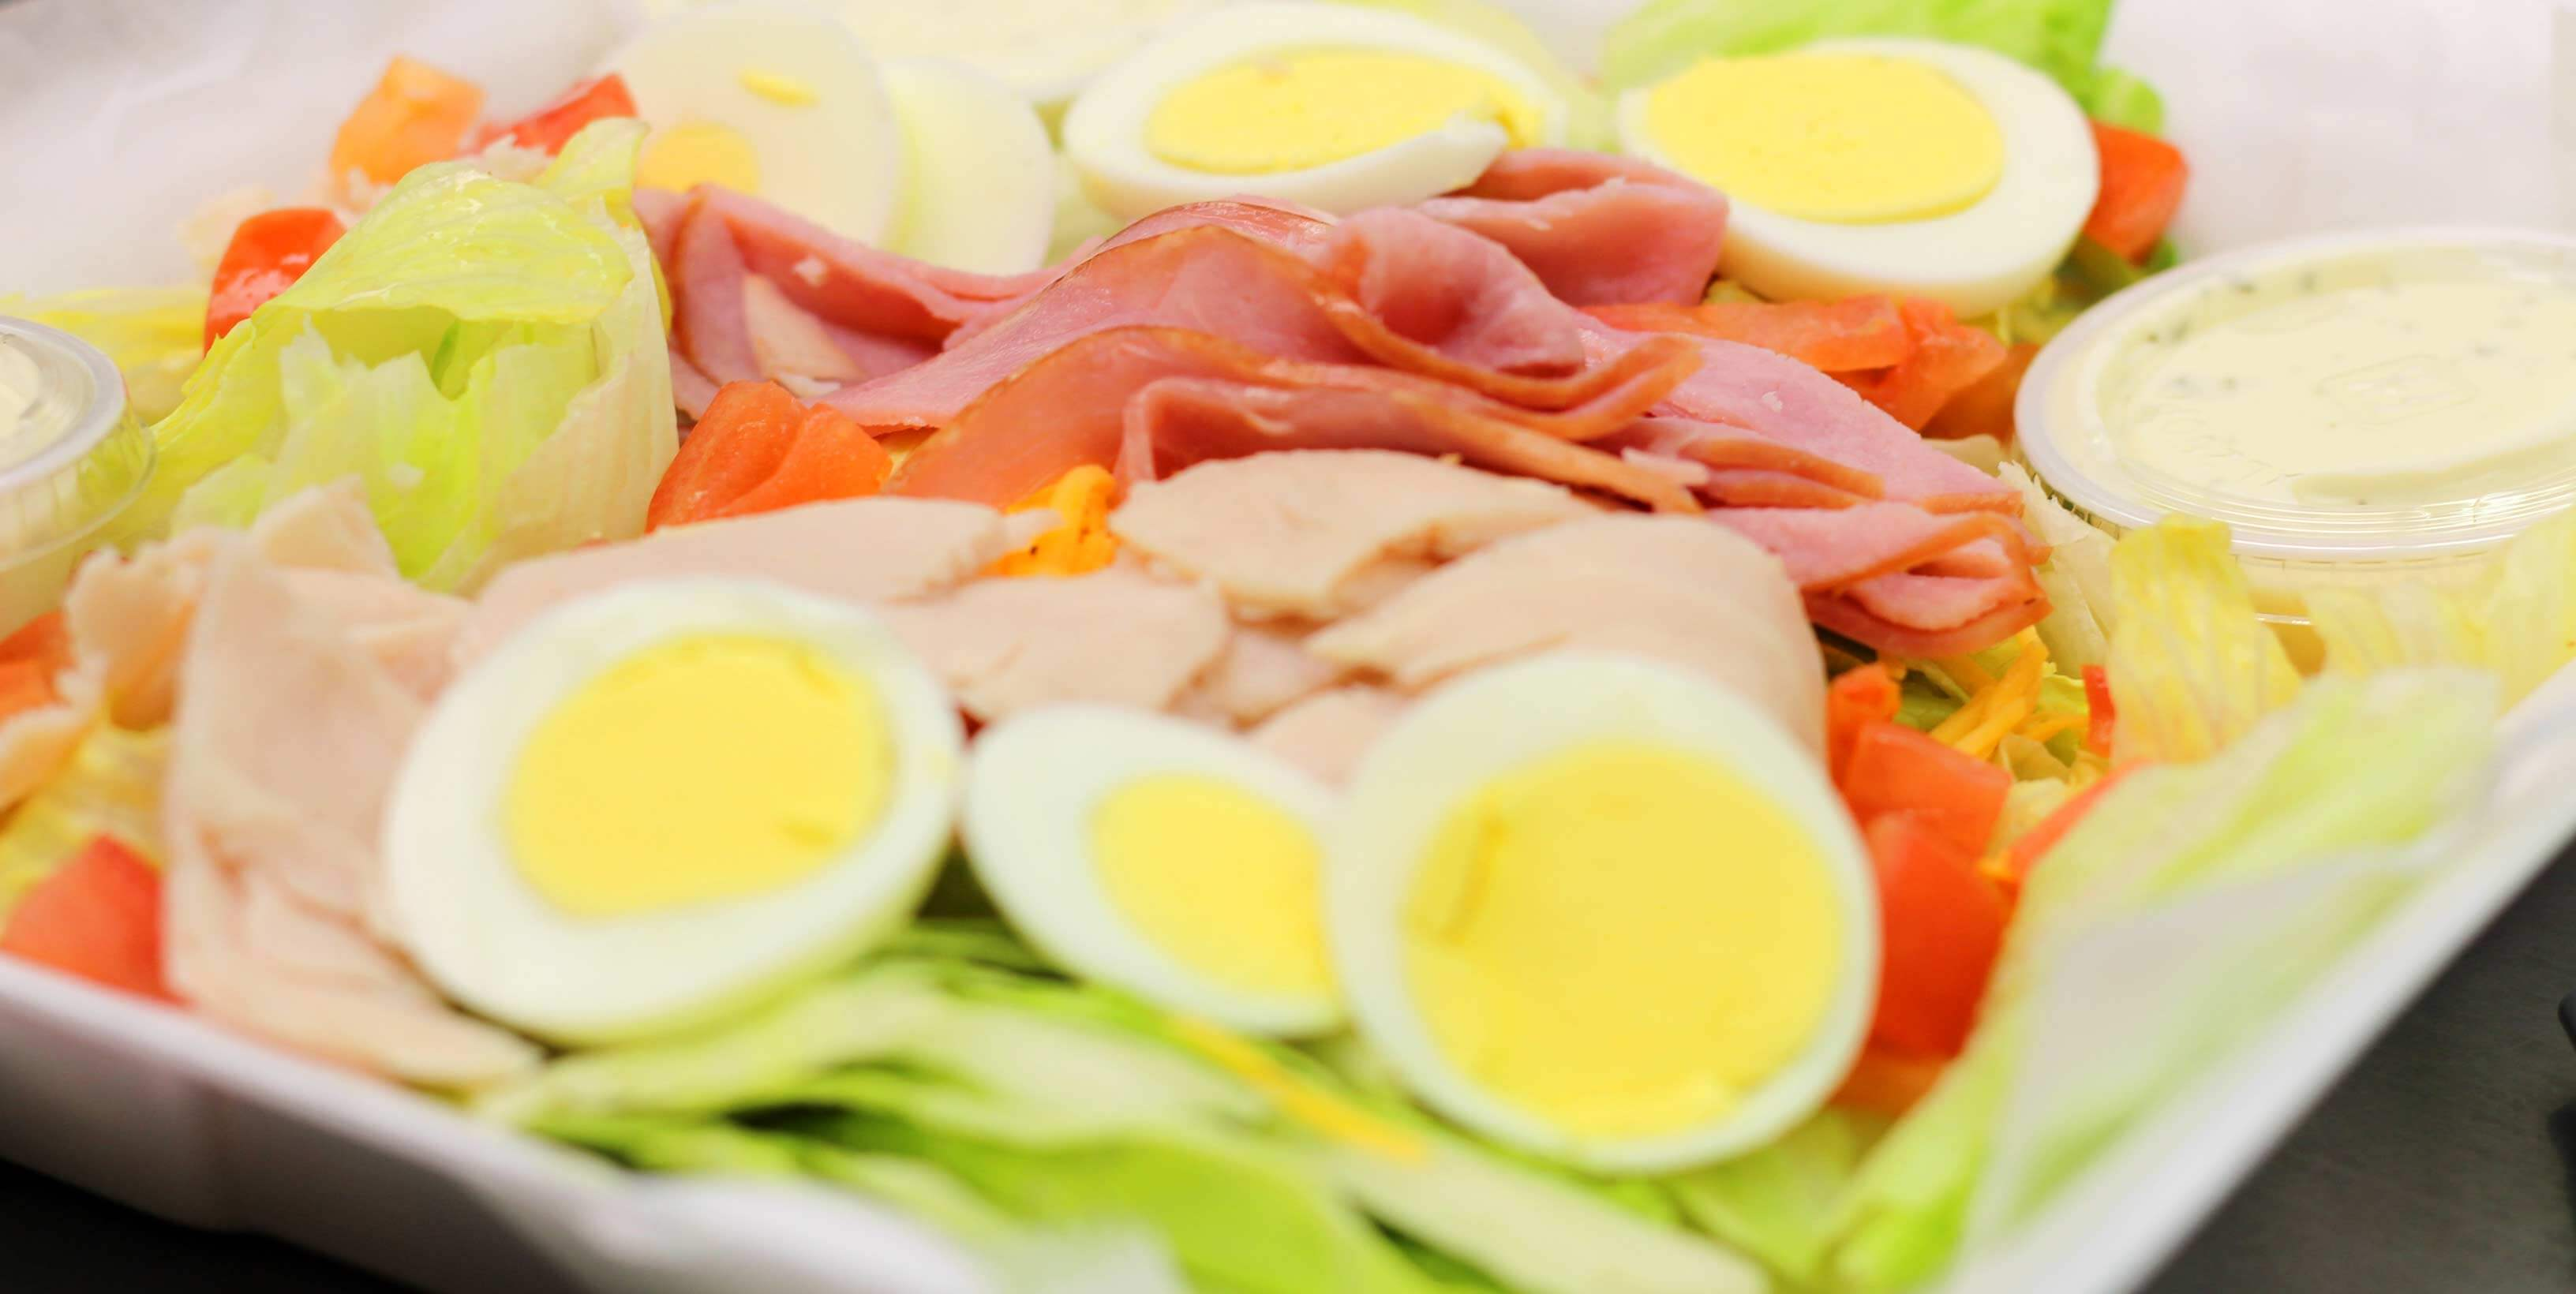 Cheif salad made up of sliced eggs, turkey, ham, bacon and lettuce